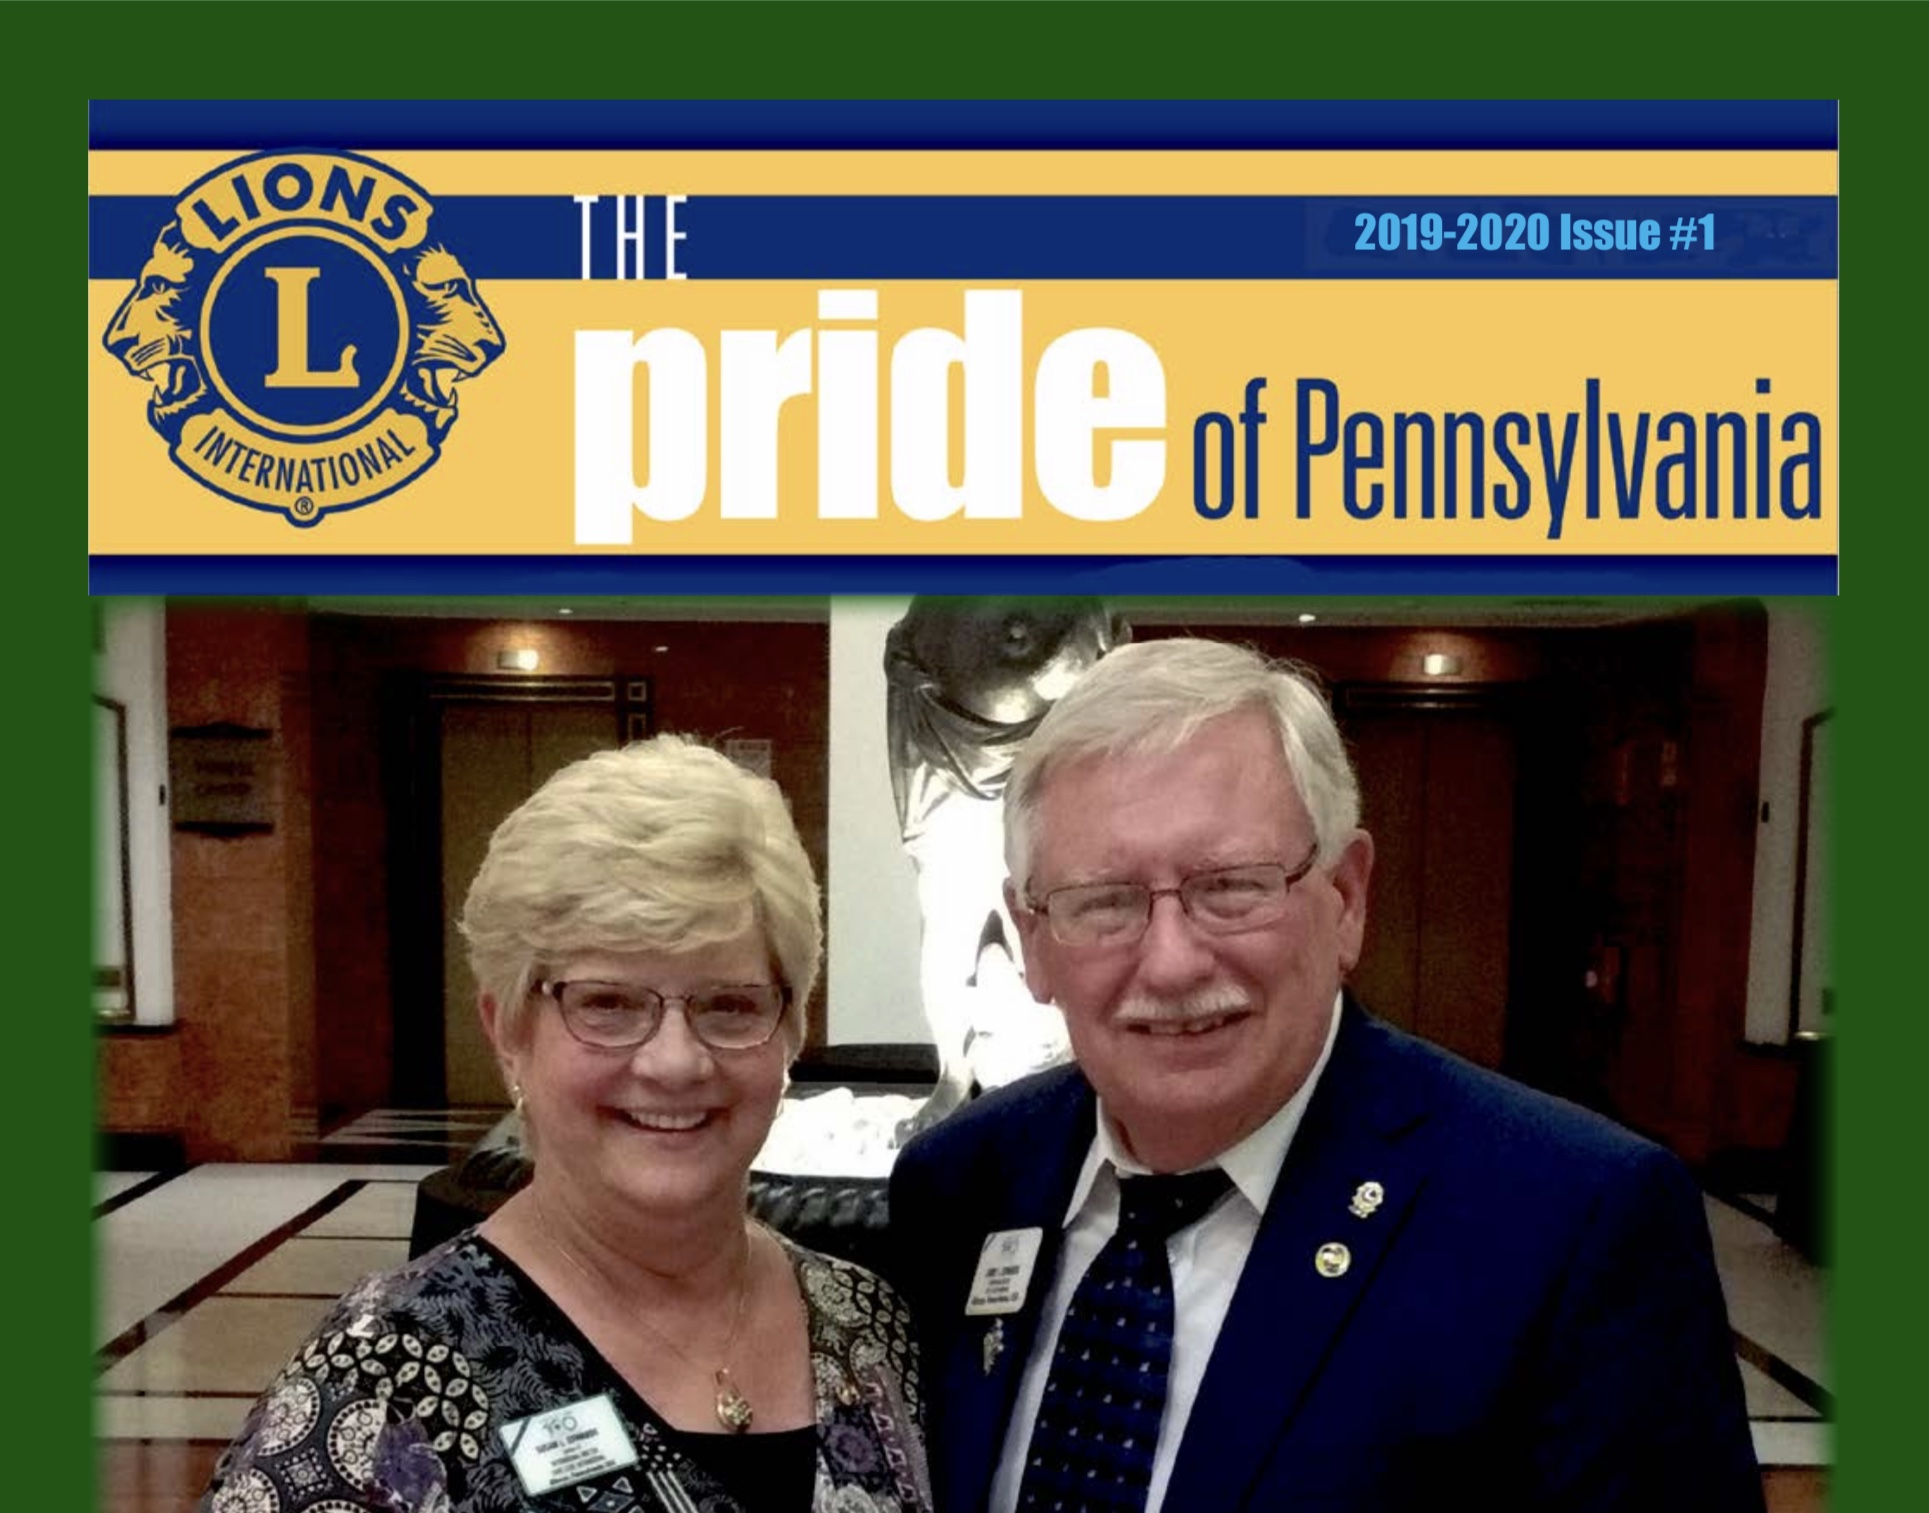 Pride 2019-2020 Issue 1